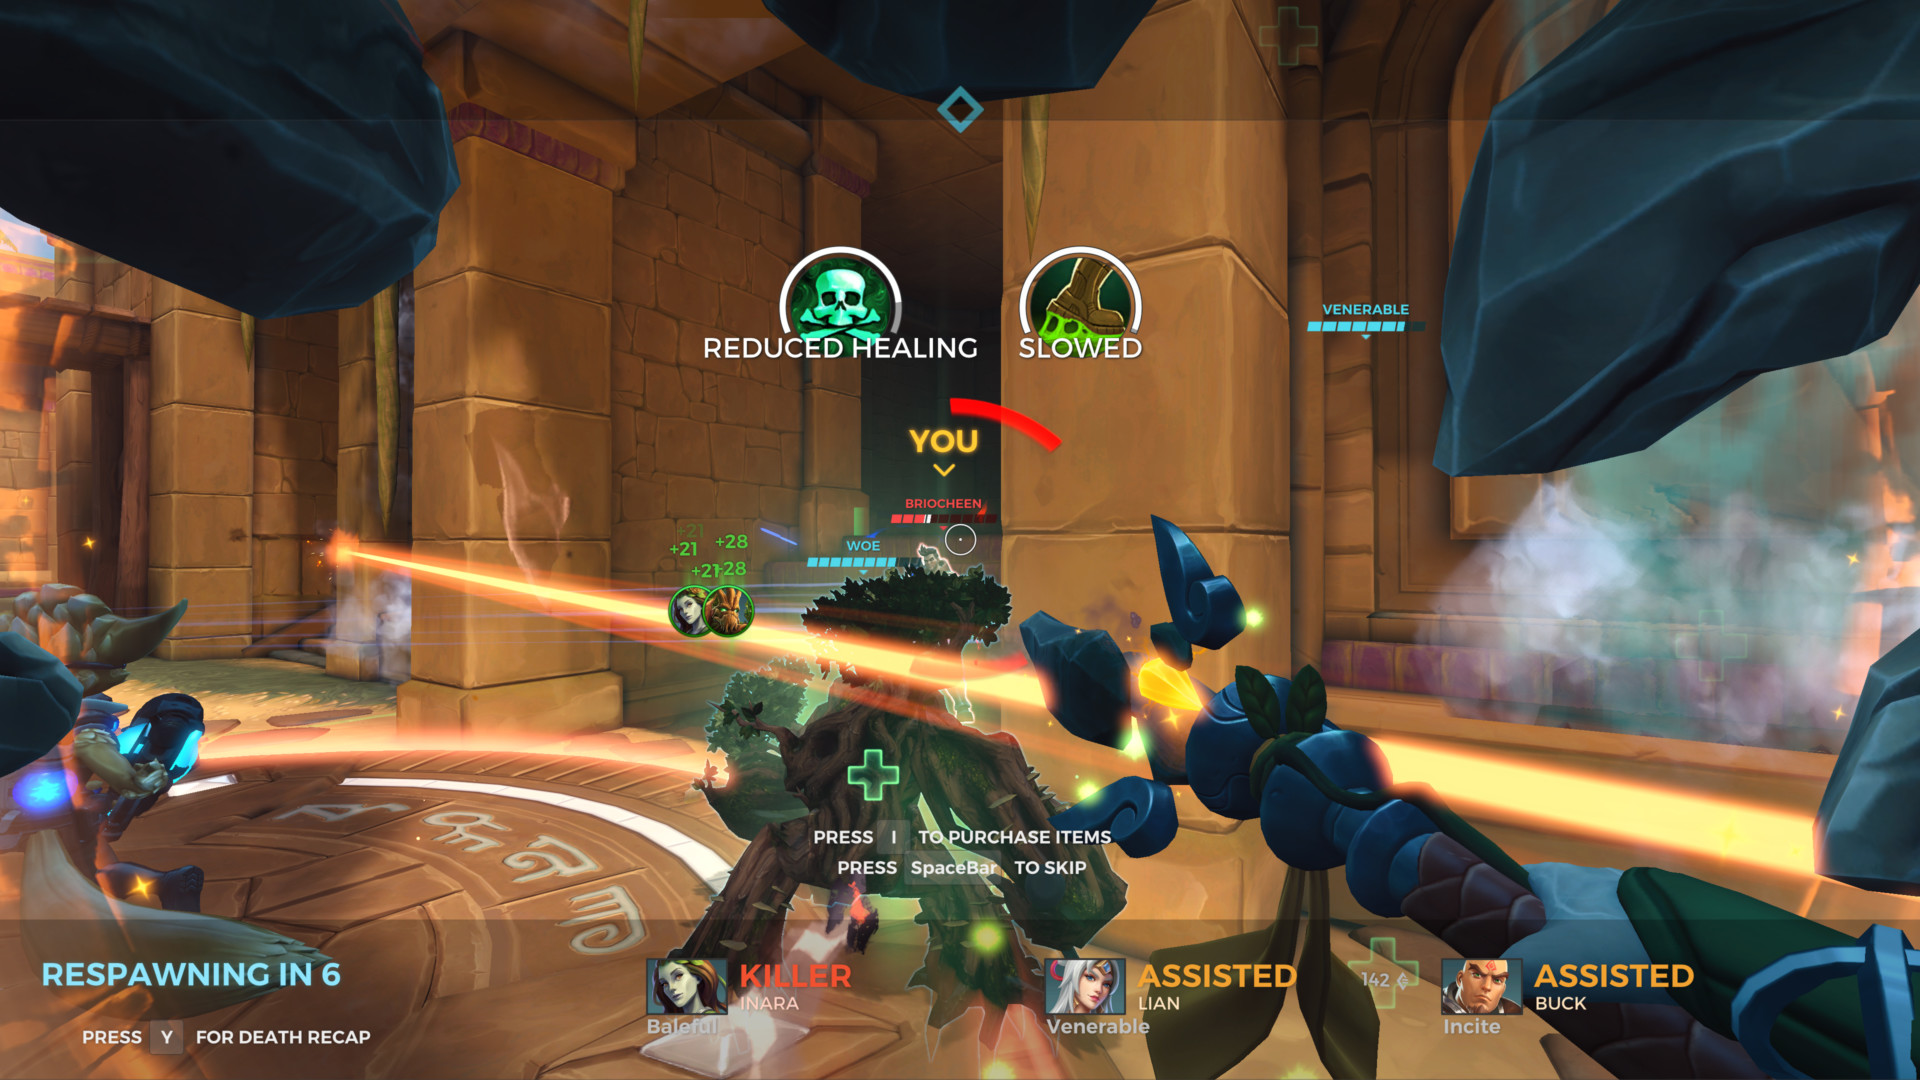 Kill cam screenshot of Paladins: Champions of the Realm video game interface.